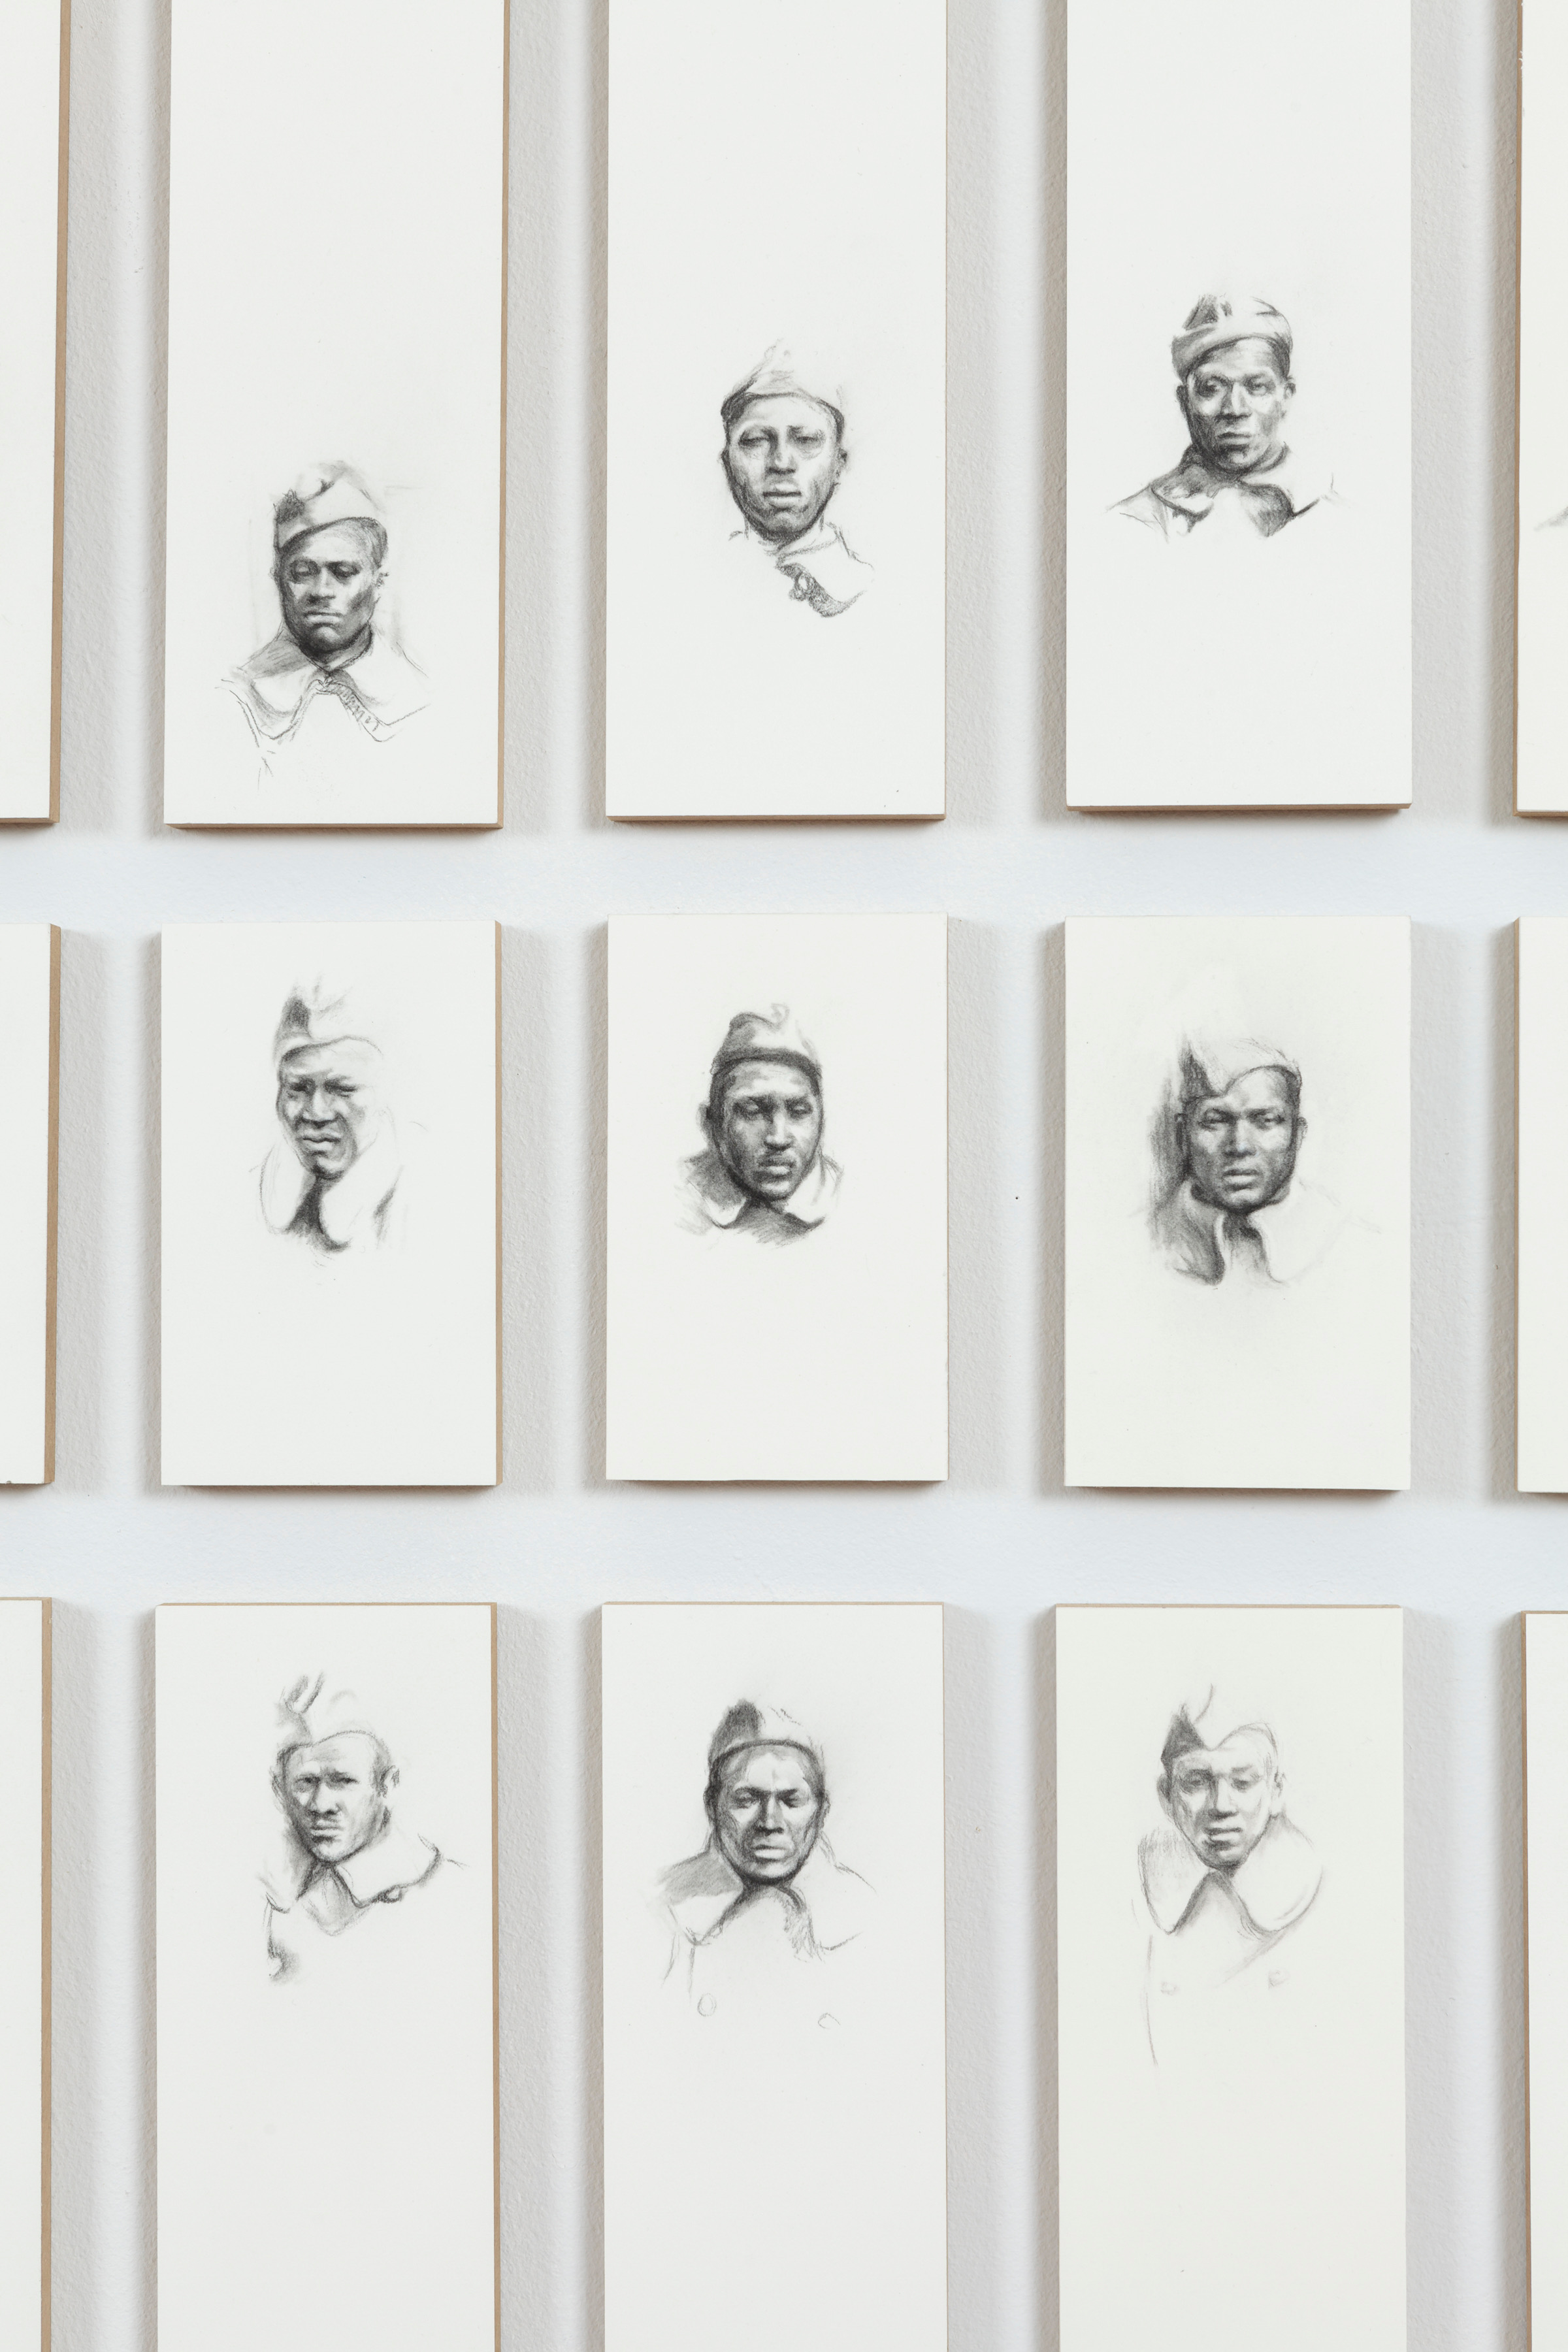 somewhere listening: Company B, 92 Division, 365th Infantry Regiment, A.E.F. 1918 - 1919 (detail), 2014  charcoal pencil on arches paper, mounted on board  An installation of 212 panels measuring 28 x 294 inches